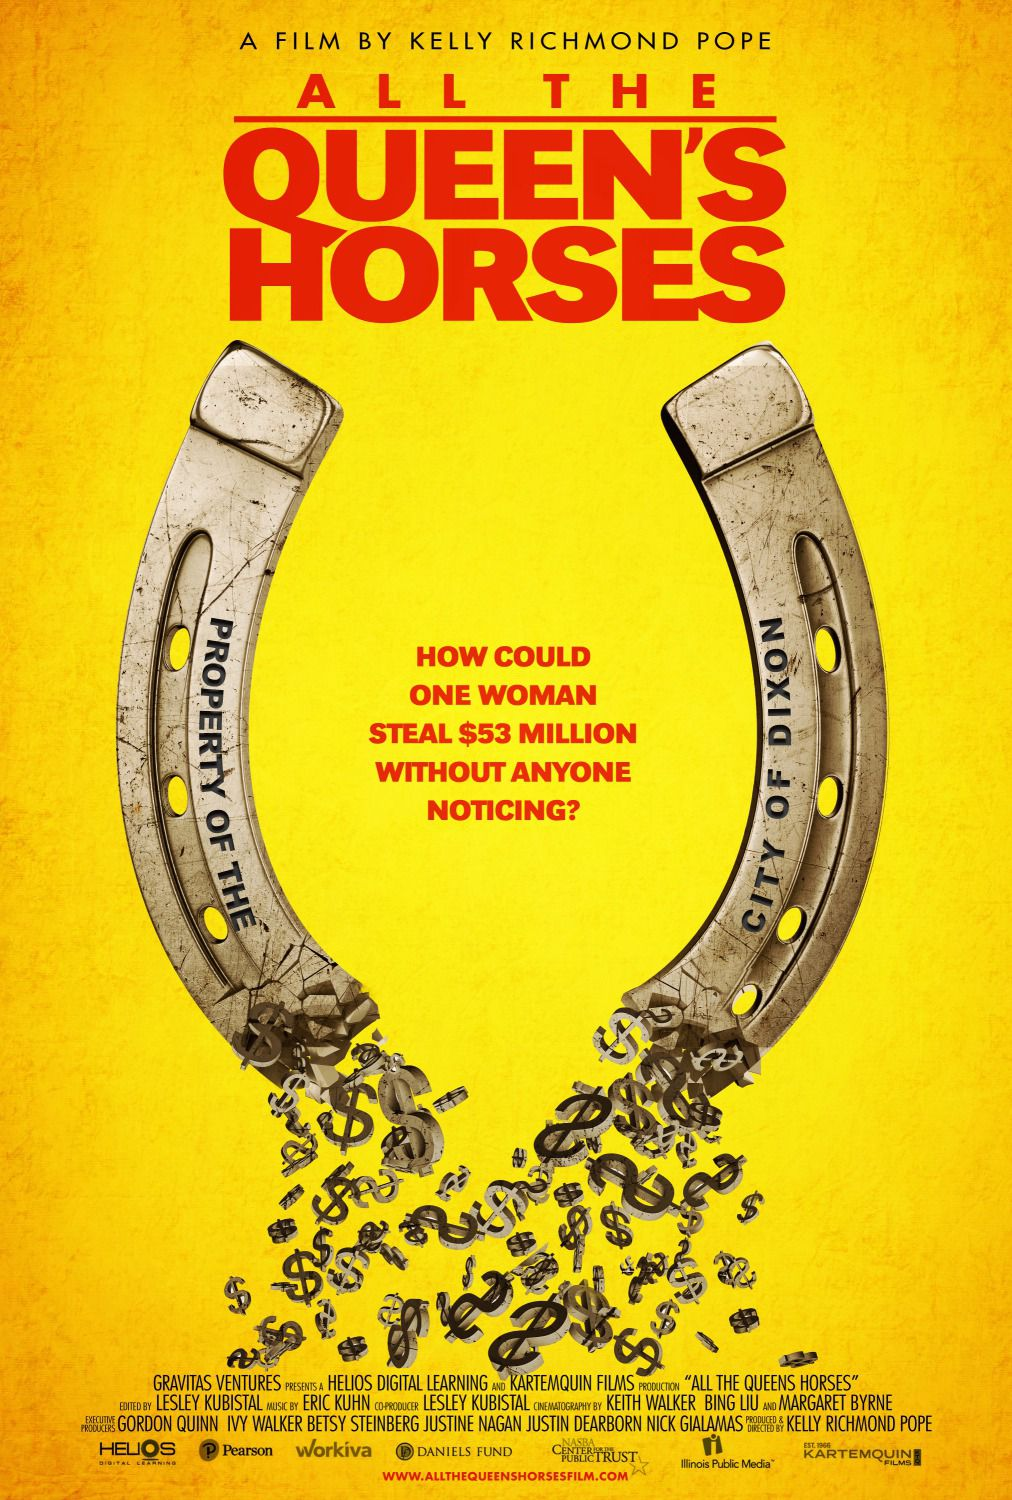 All the Queen's Horses by Kelly Richmond Pope - film poster